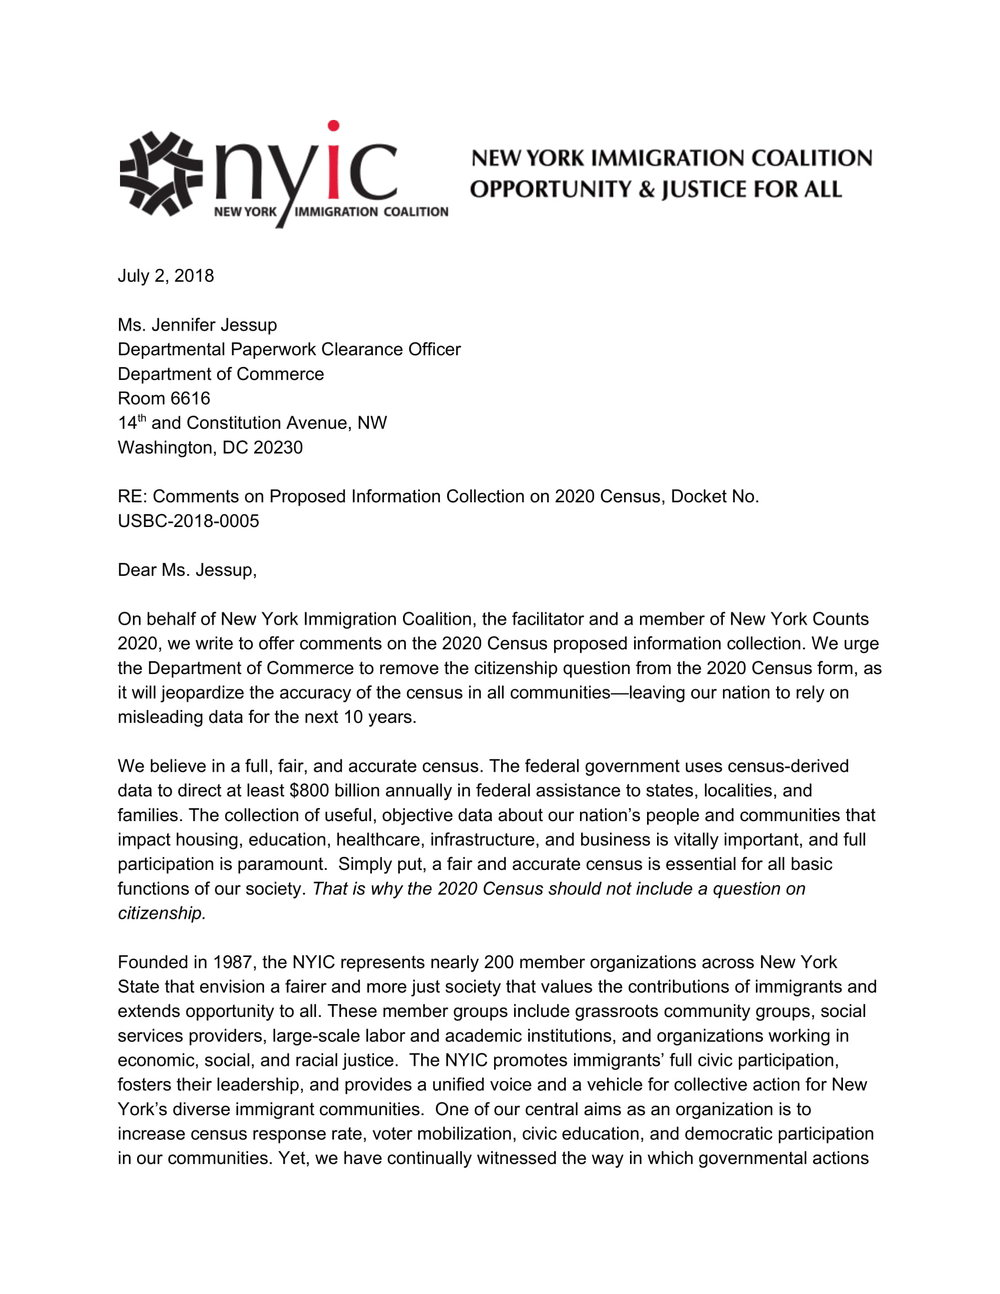 NYIC Comment Draft-1.jpg